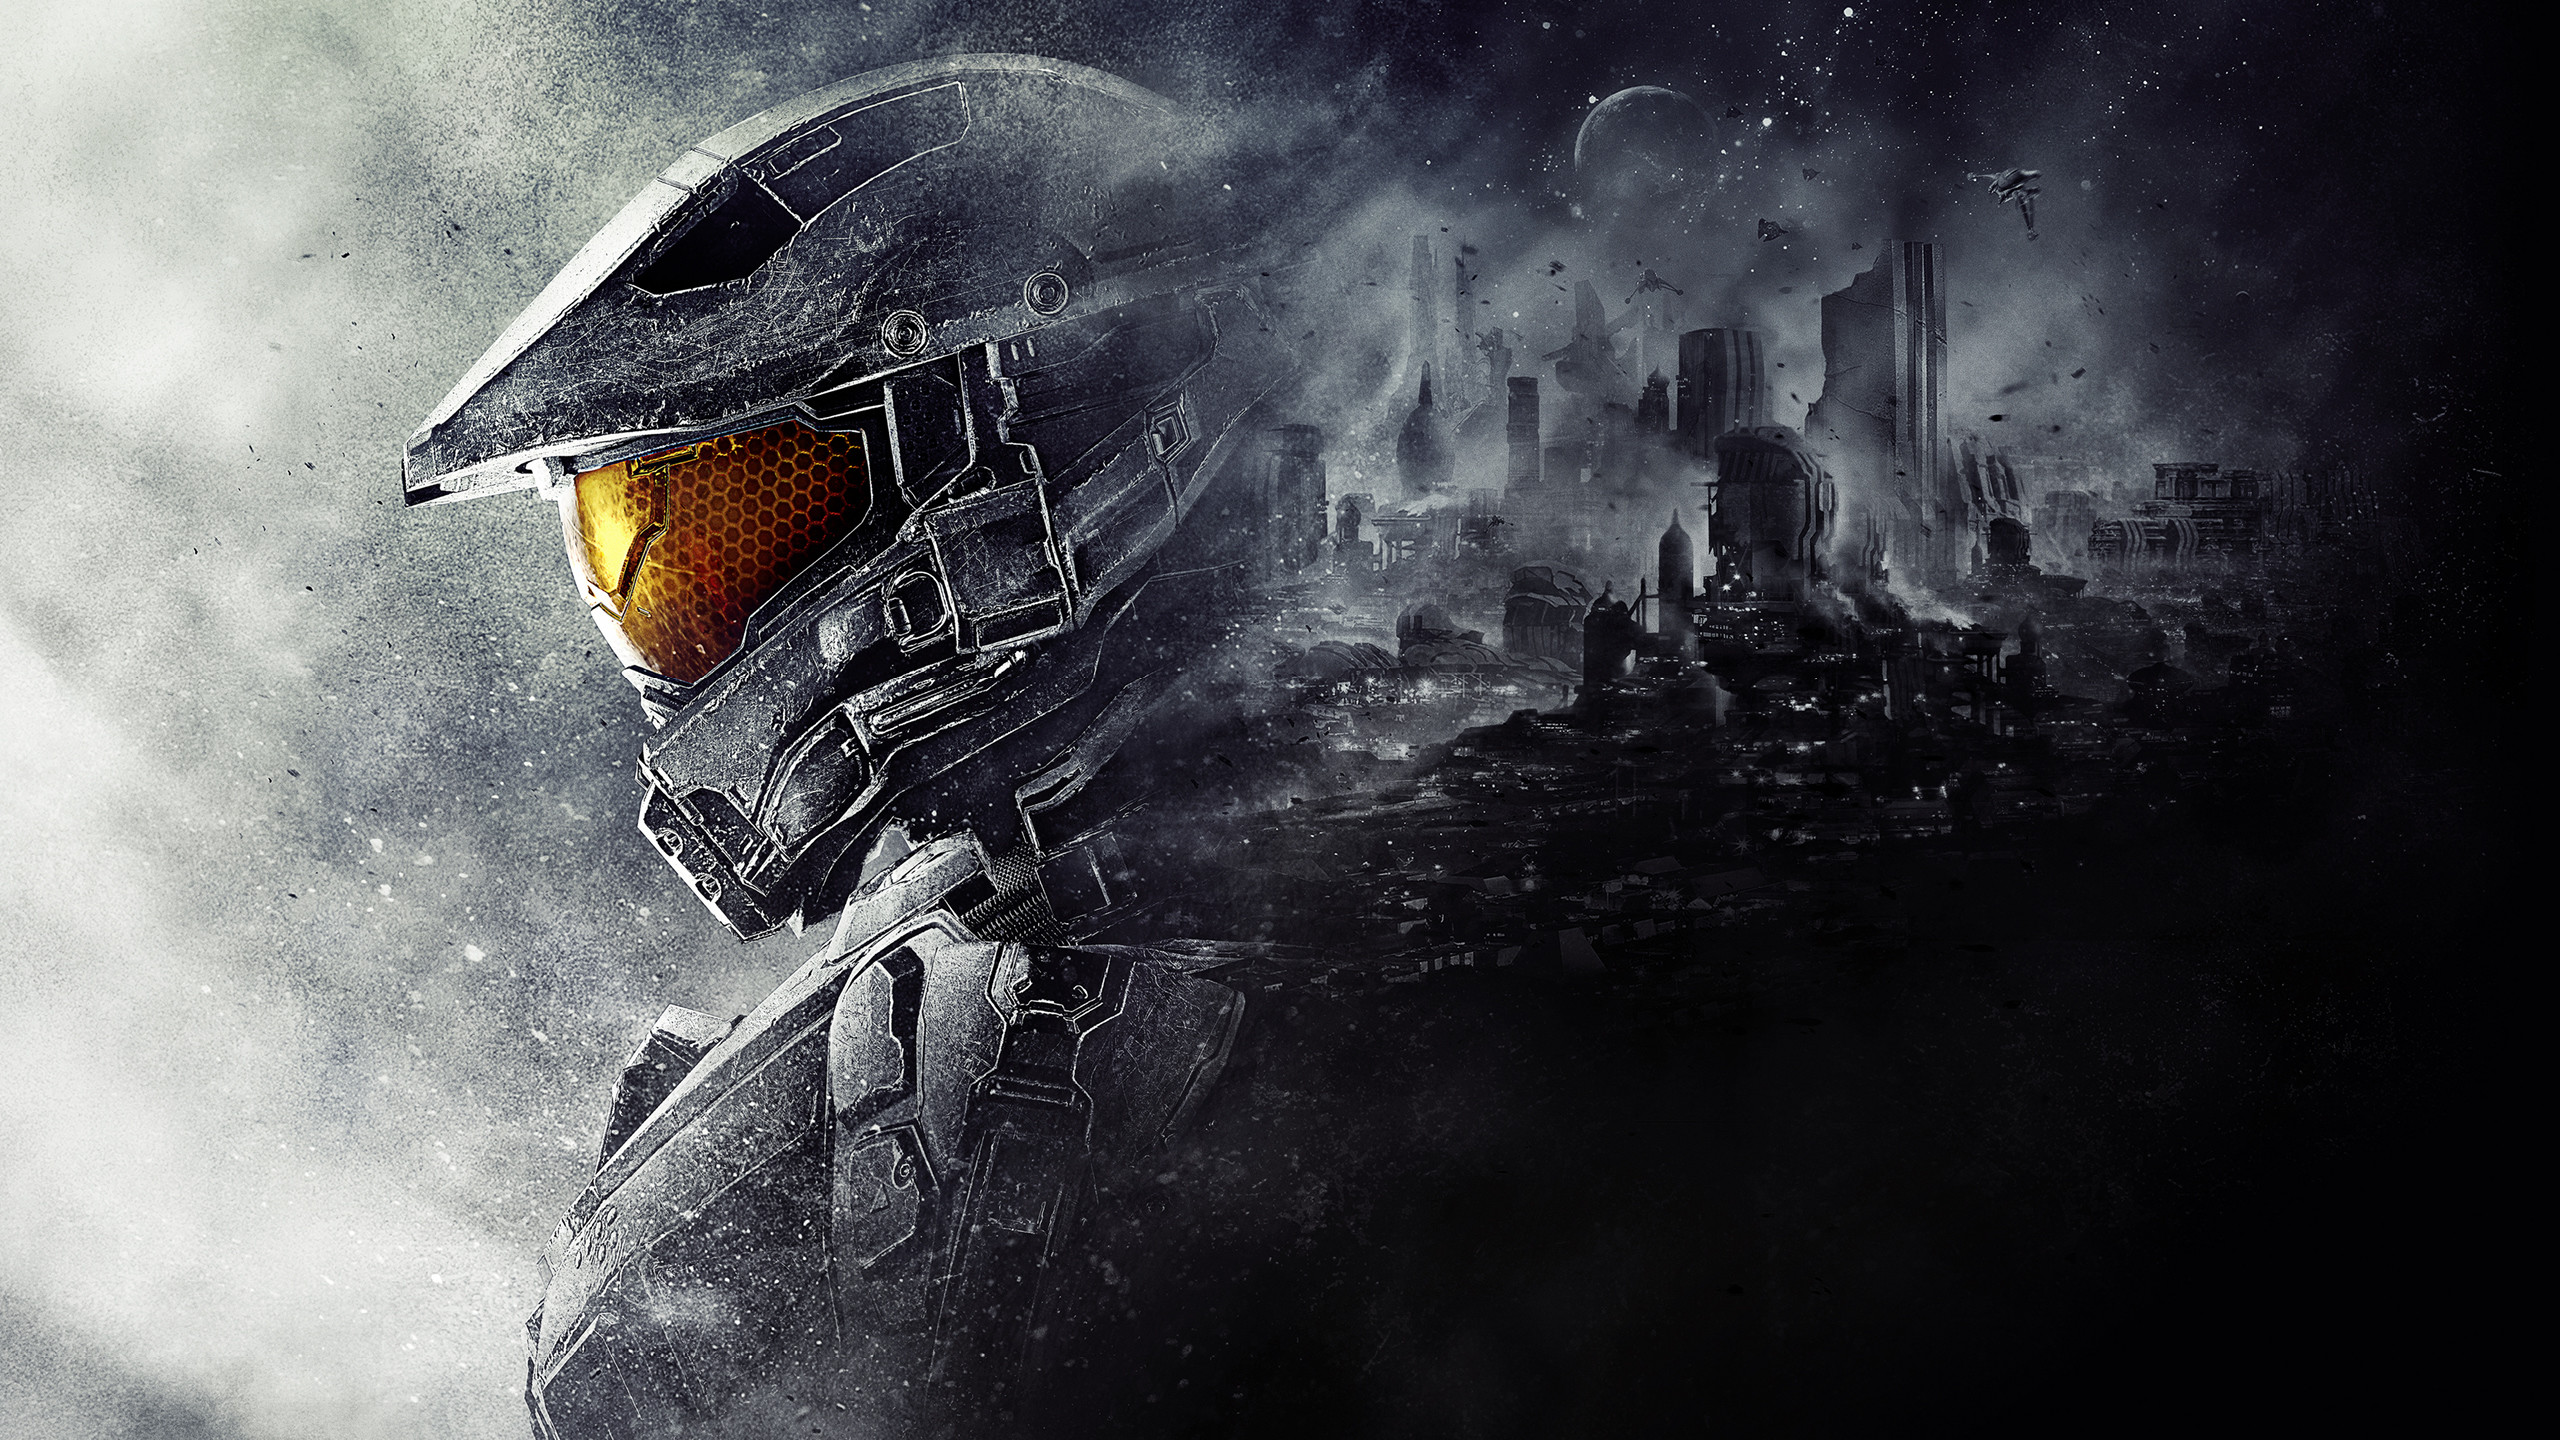 Master Chief Halo 5 Guardians Wallpapers | HD Wallpapers